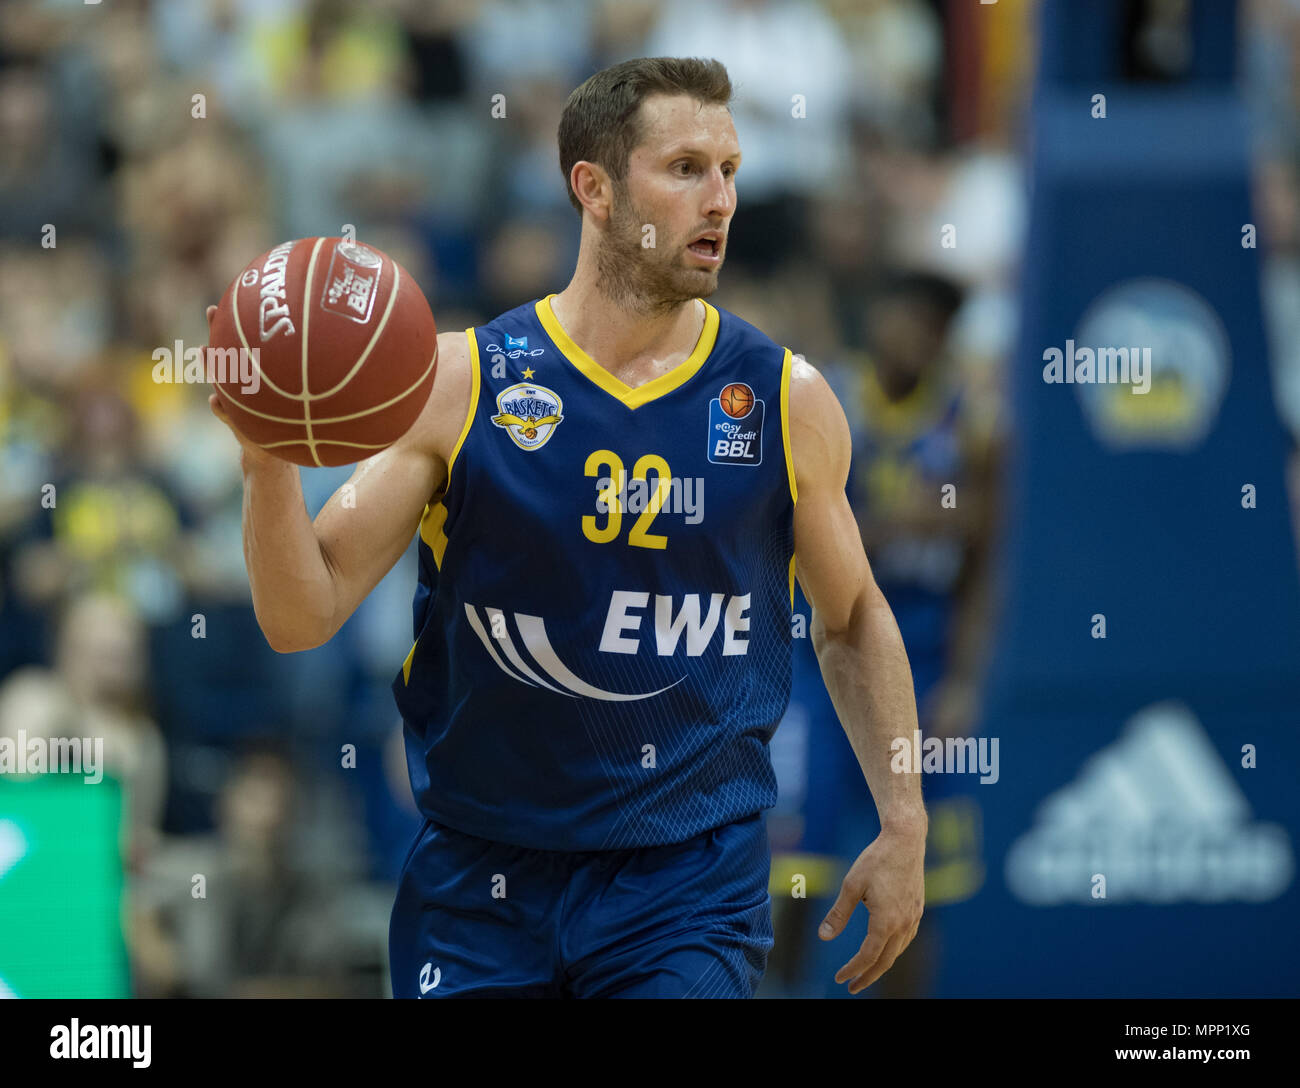 17 May 2018, Germany, Berlin: Bundesliga, quarter-final, ALBA Berlin vs. EWE Baskets Oldenburg in the Mercedes-Benz arena. Oldenburg's Mickey McConnell. Photo: Soeren Stache/dpa - Stock Image